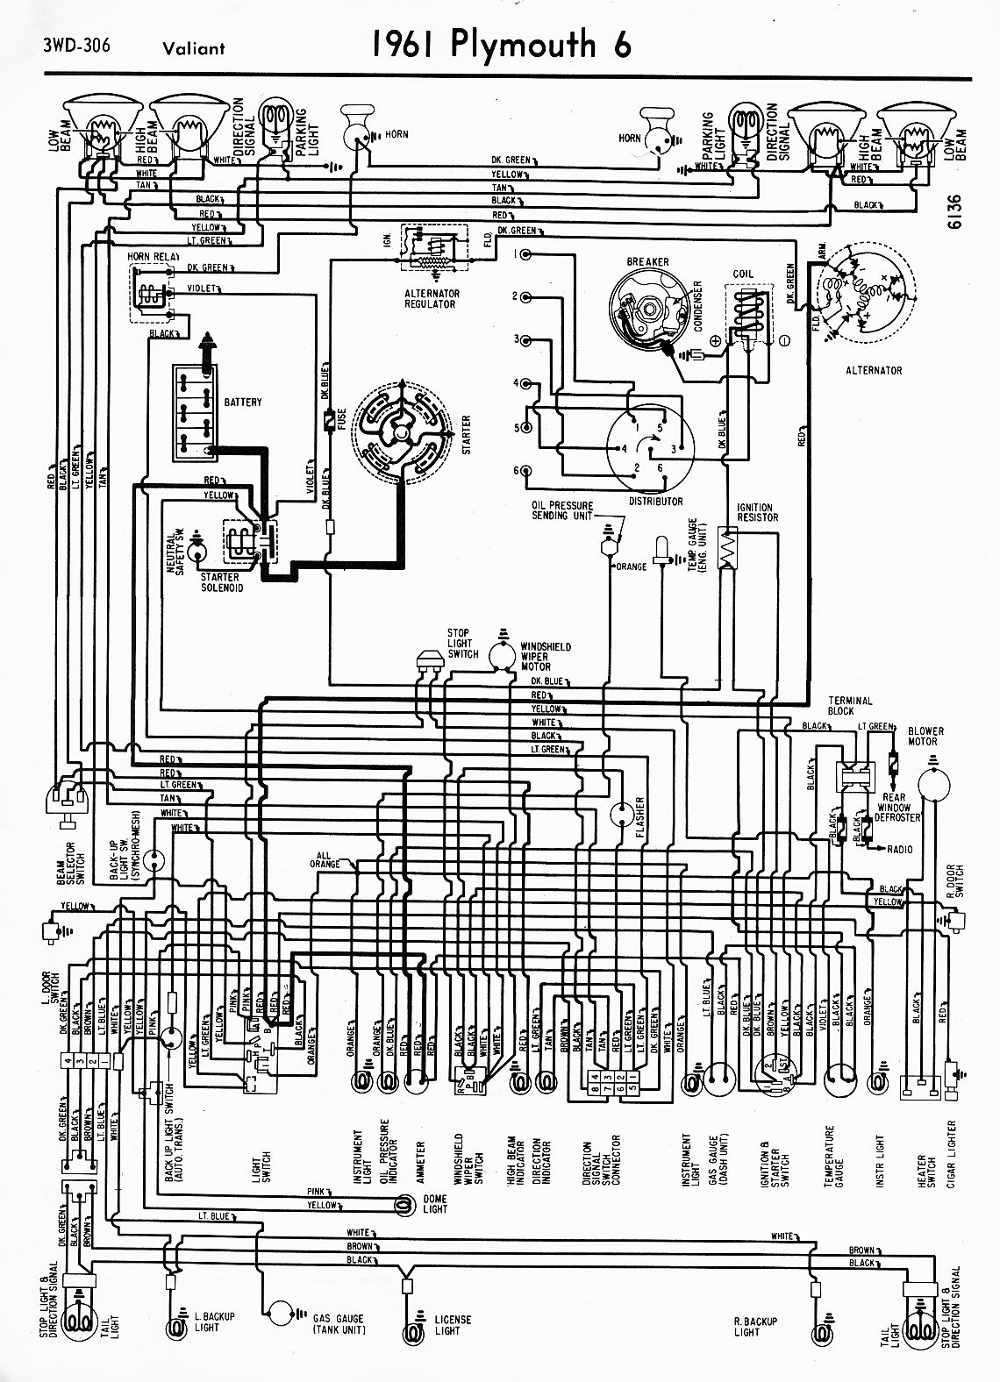 small resolution of wiring diagram for 1966 plymouth valiant wiring diagram expert 1966 plymouth satellite wiring diagram